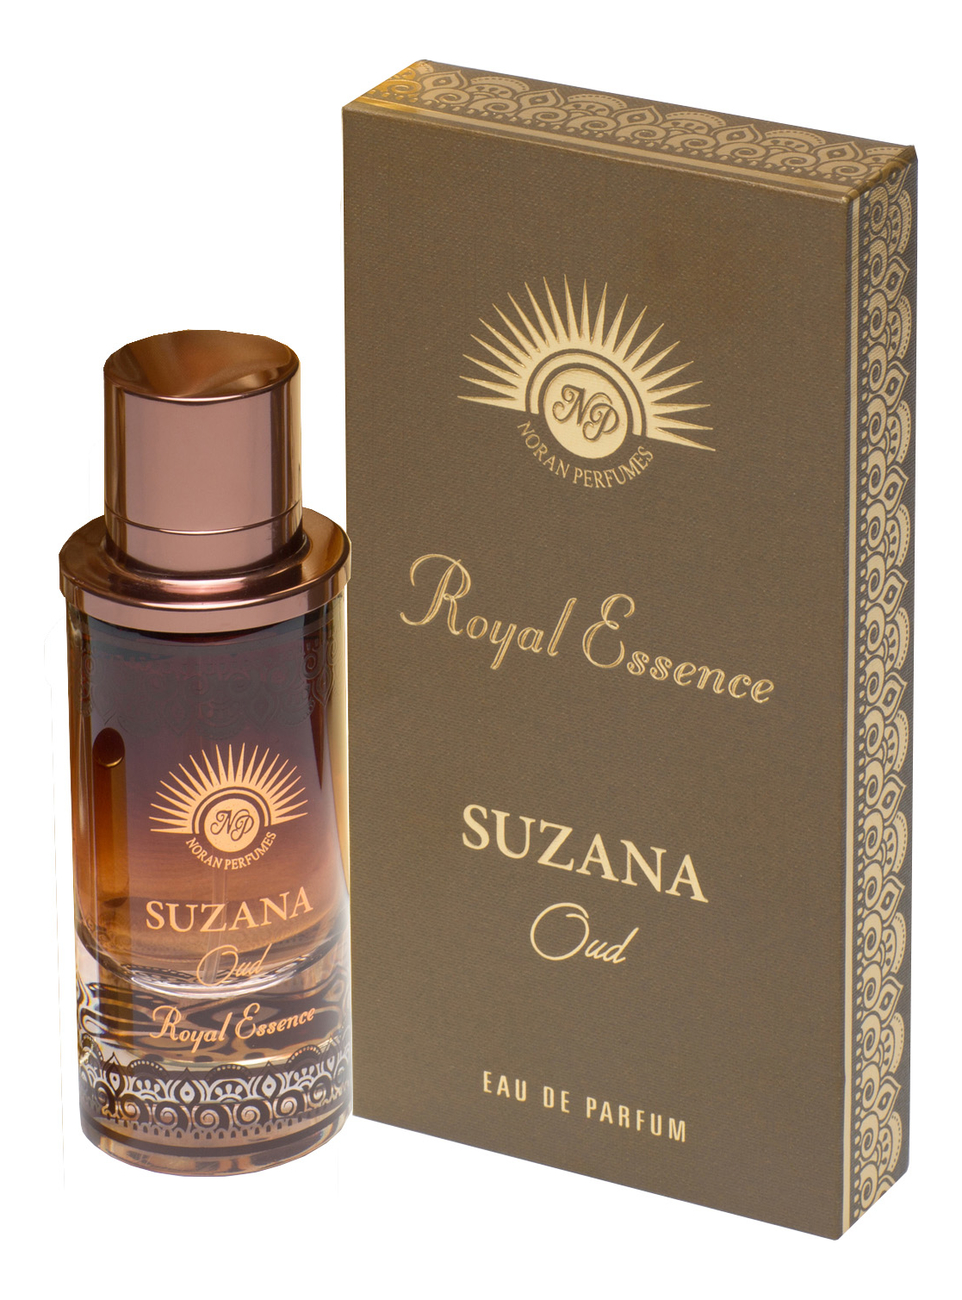 Noran Perfumes Suzana Oud: парфюмерная вода 75мл фото